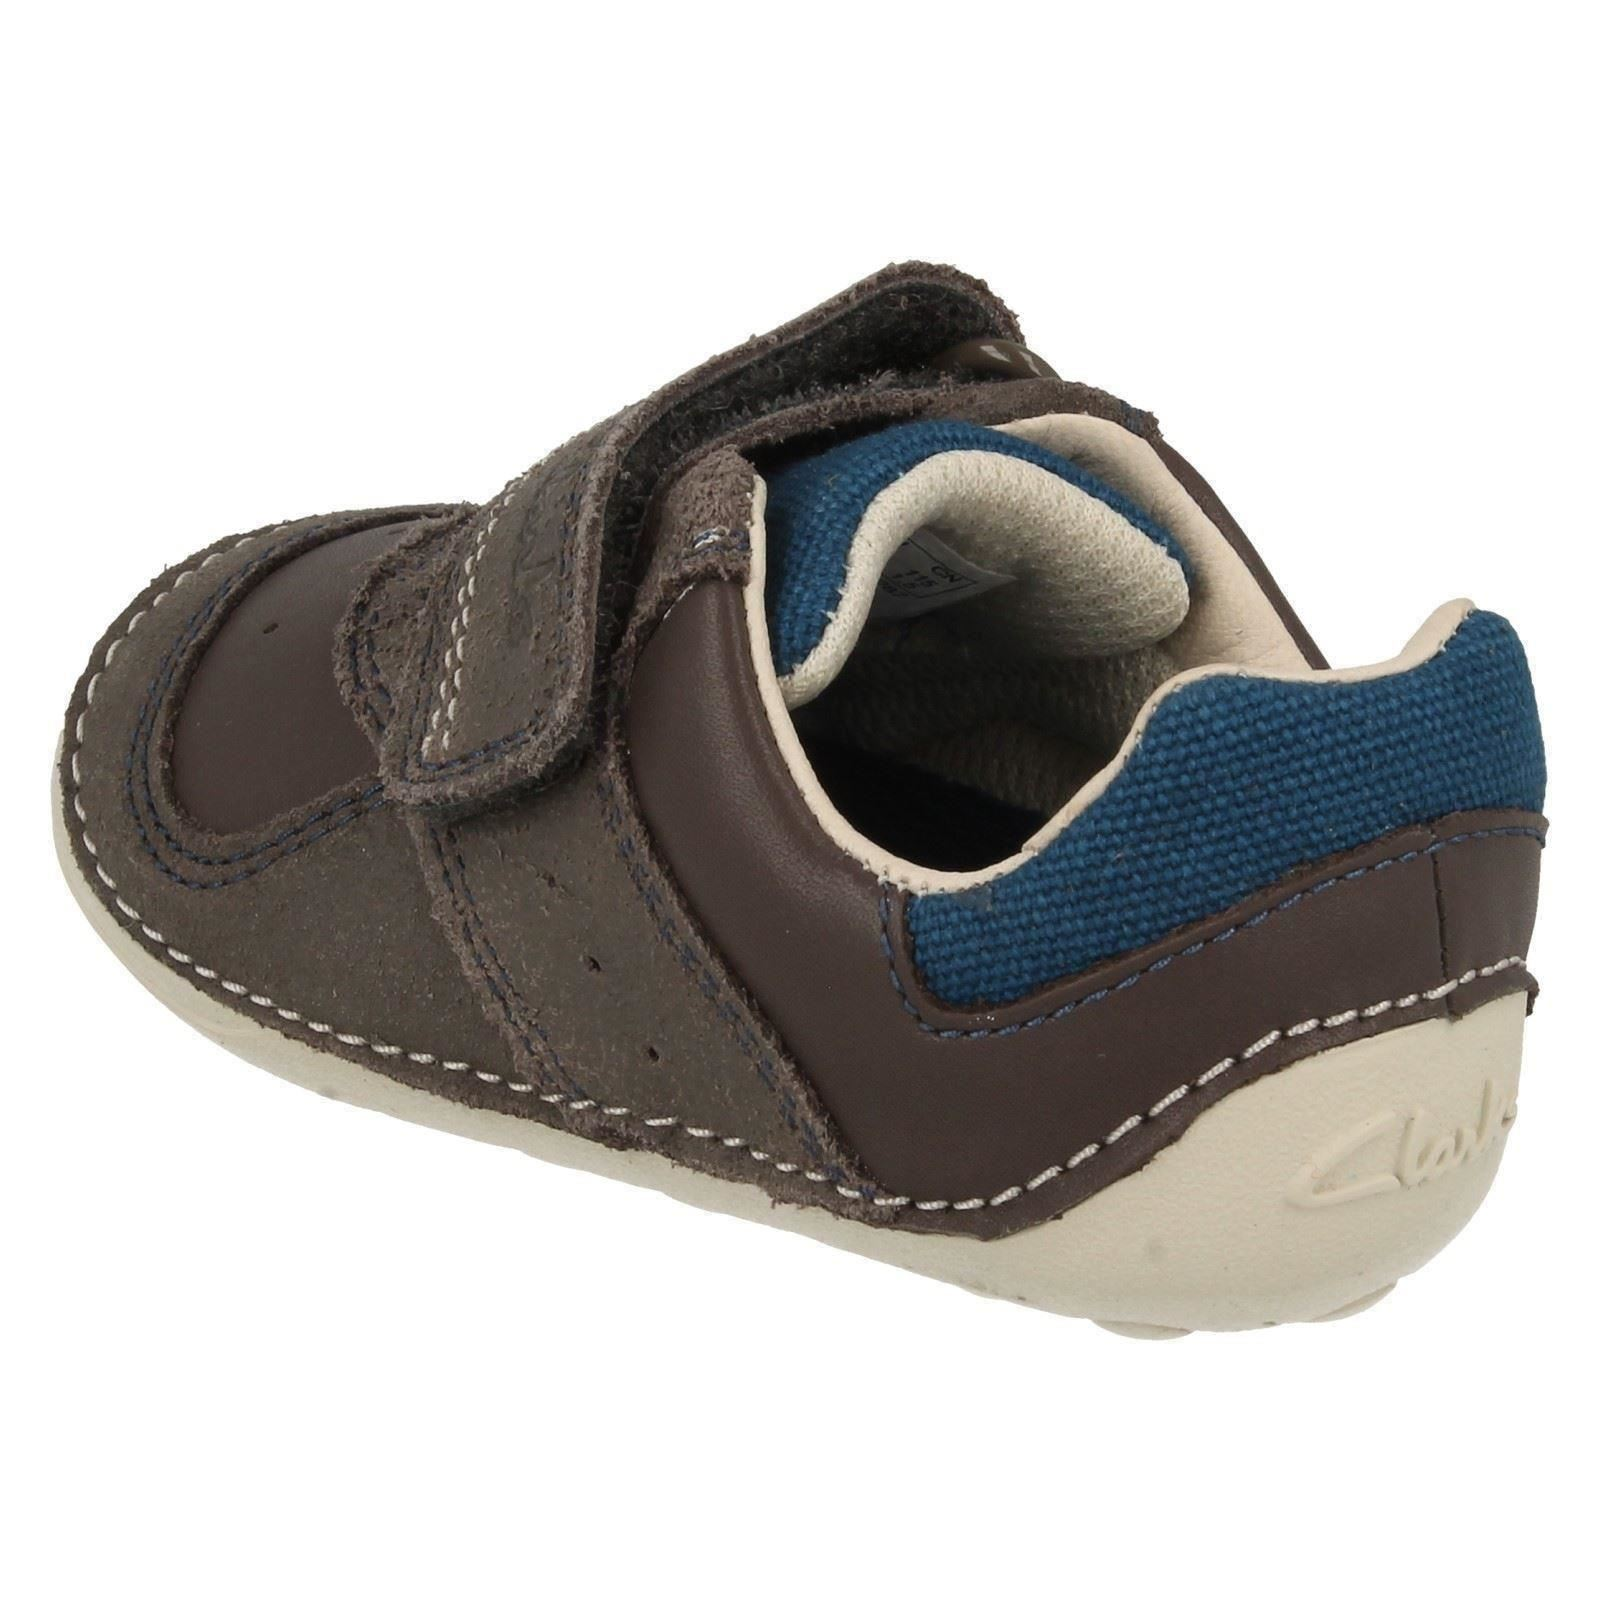 Clarks Infant Boys First Cruiser Shoes - Tiny Tay